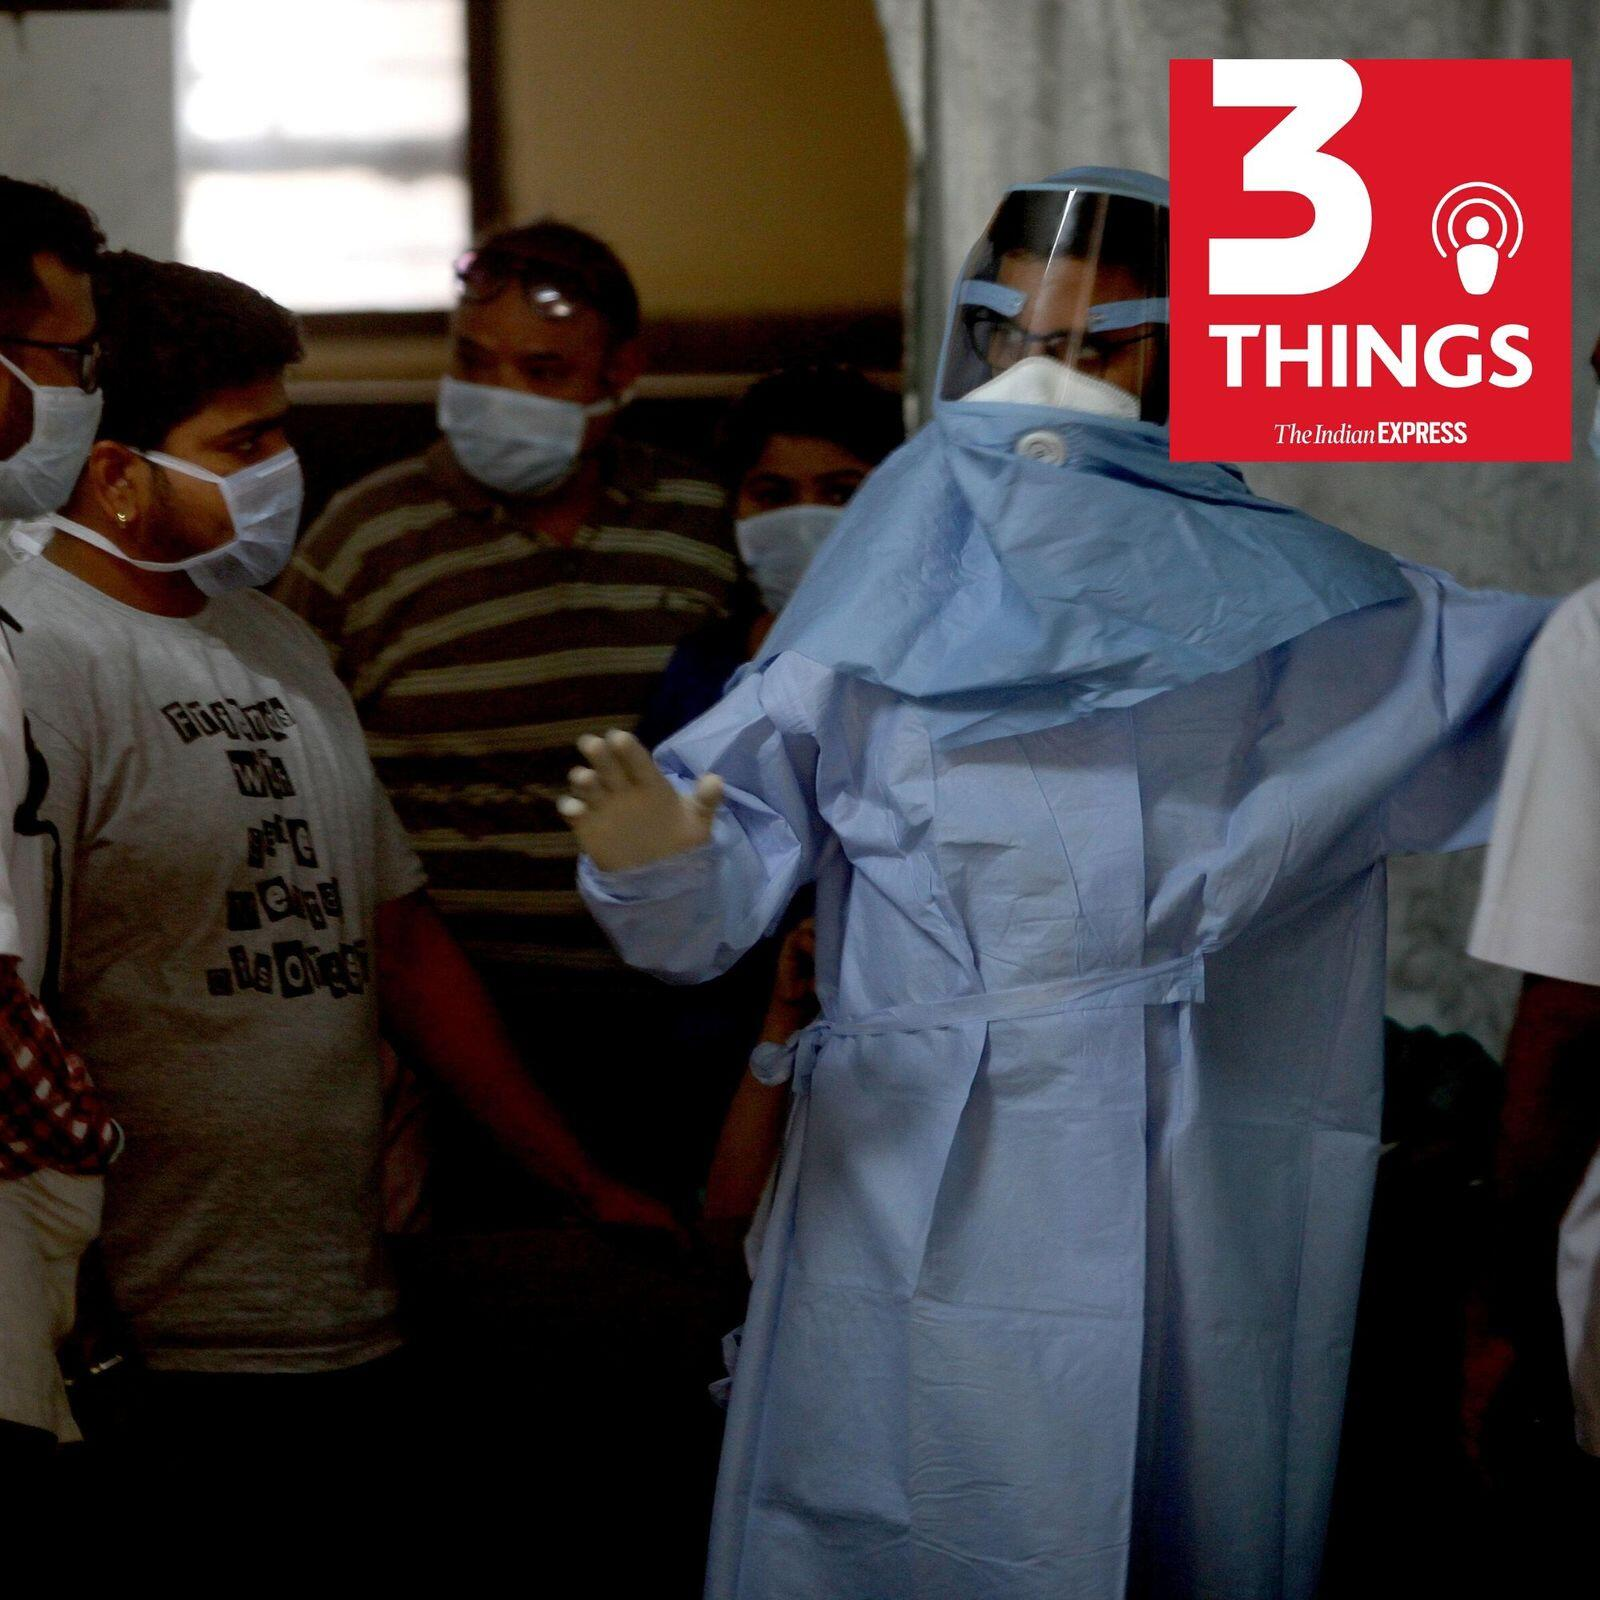 886: Why Gujarat is facing criticism for its handling of COVID-19 pandemic